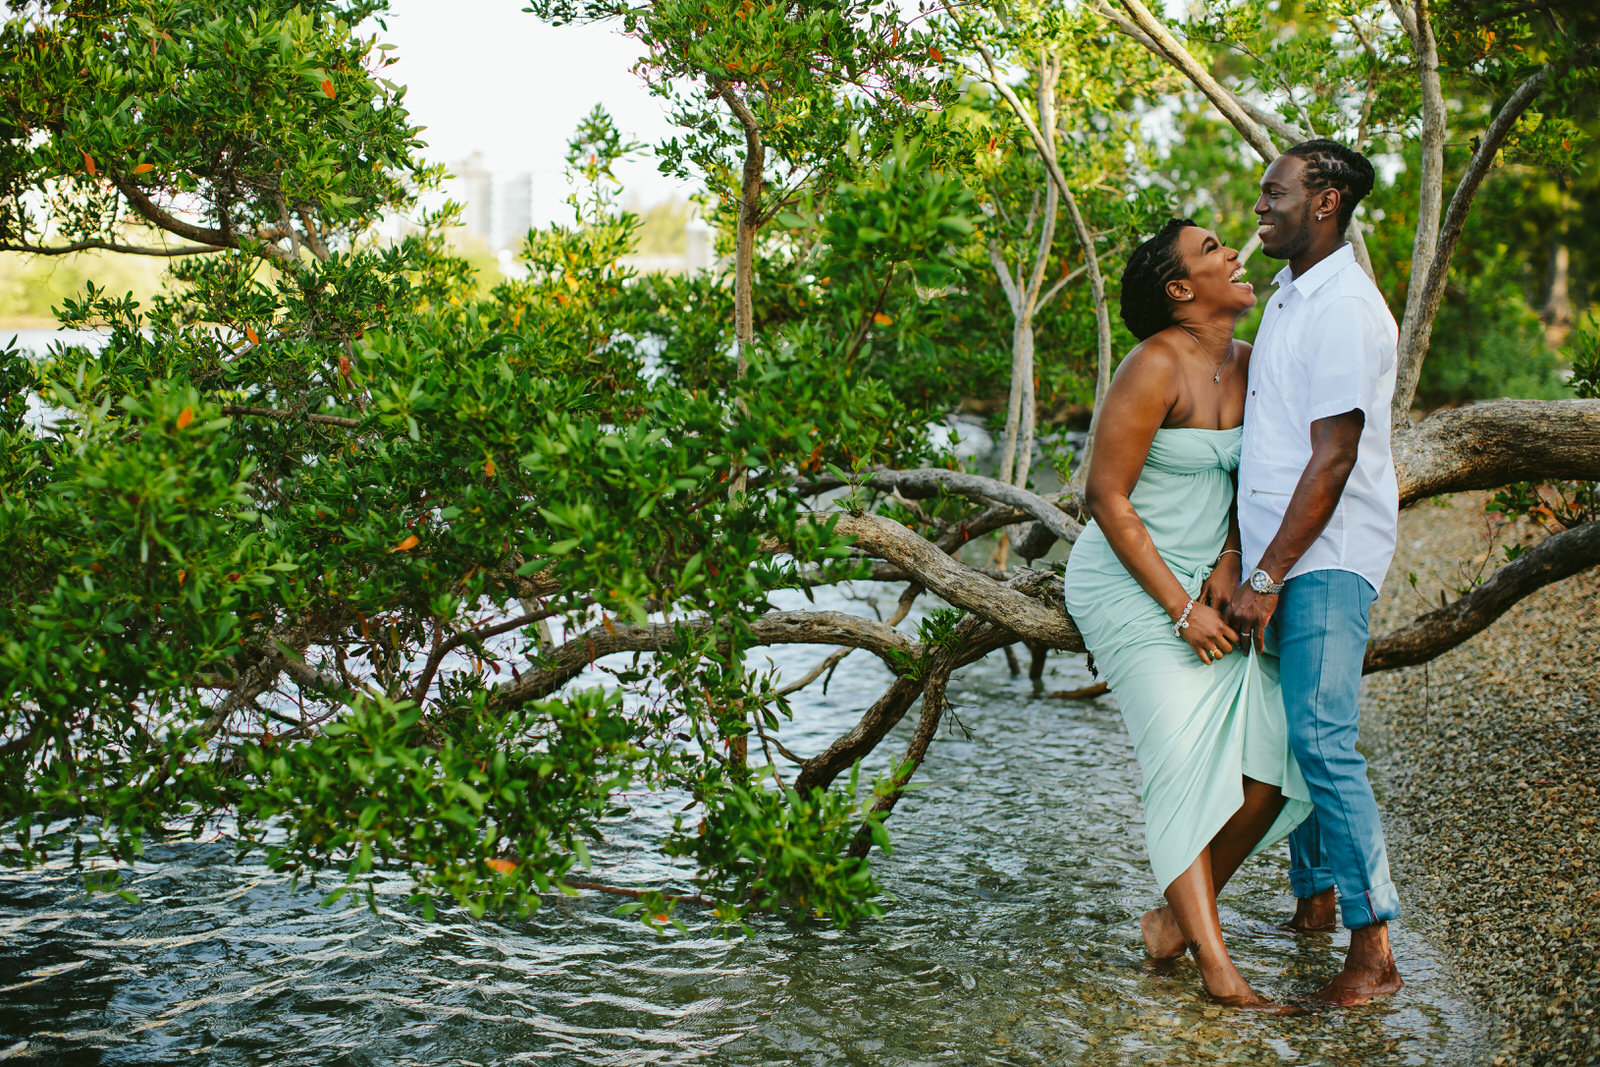 engagement-portraits-fort-lauderdale-nature-tiny-house-photo-55.jpg